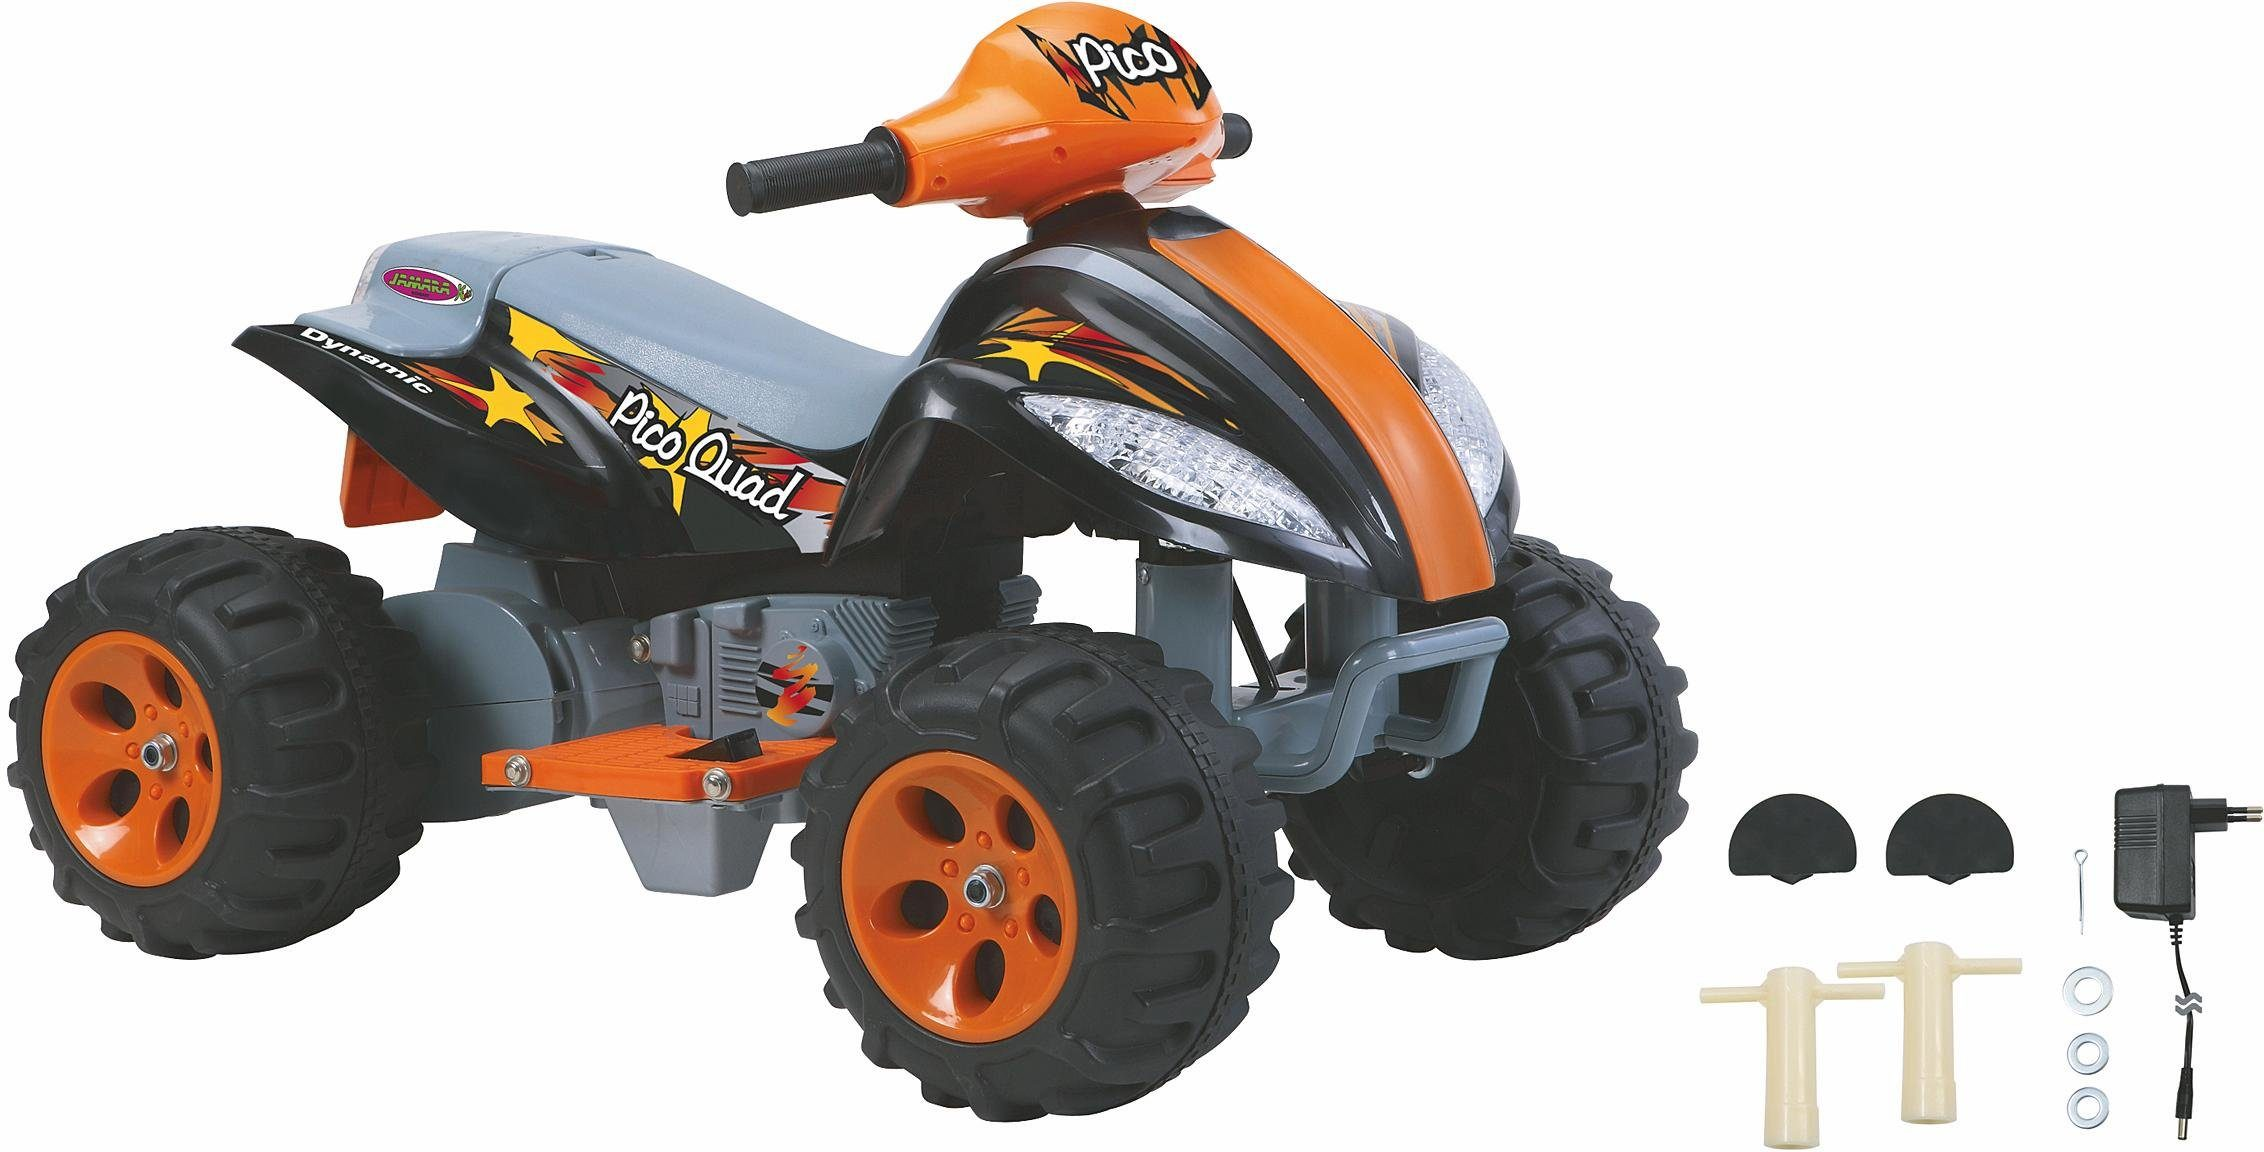 JAMARA Elektrofahrzeug für Kinder, »JAMARA KIDS Ride On Quad Pico orange 6V«